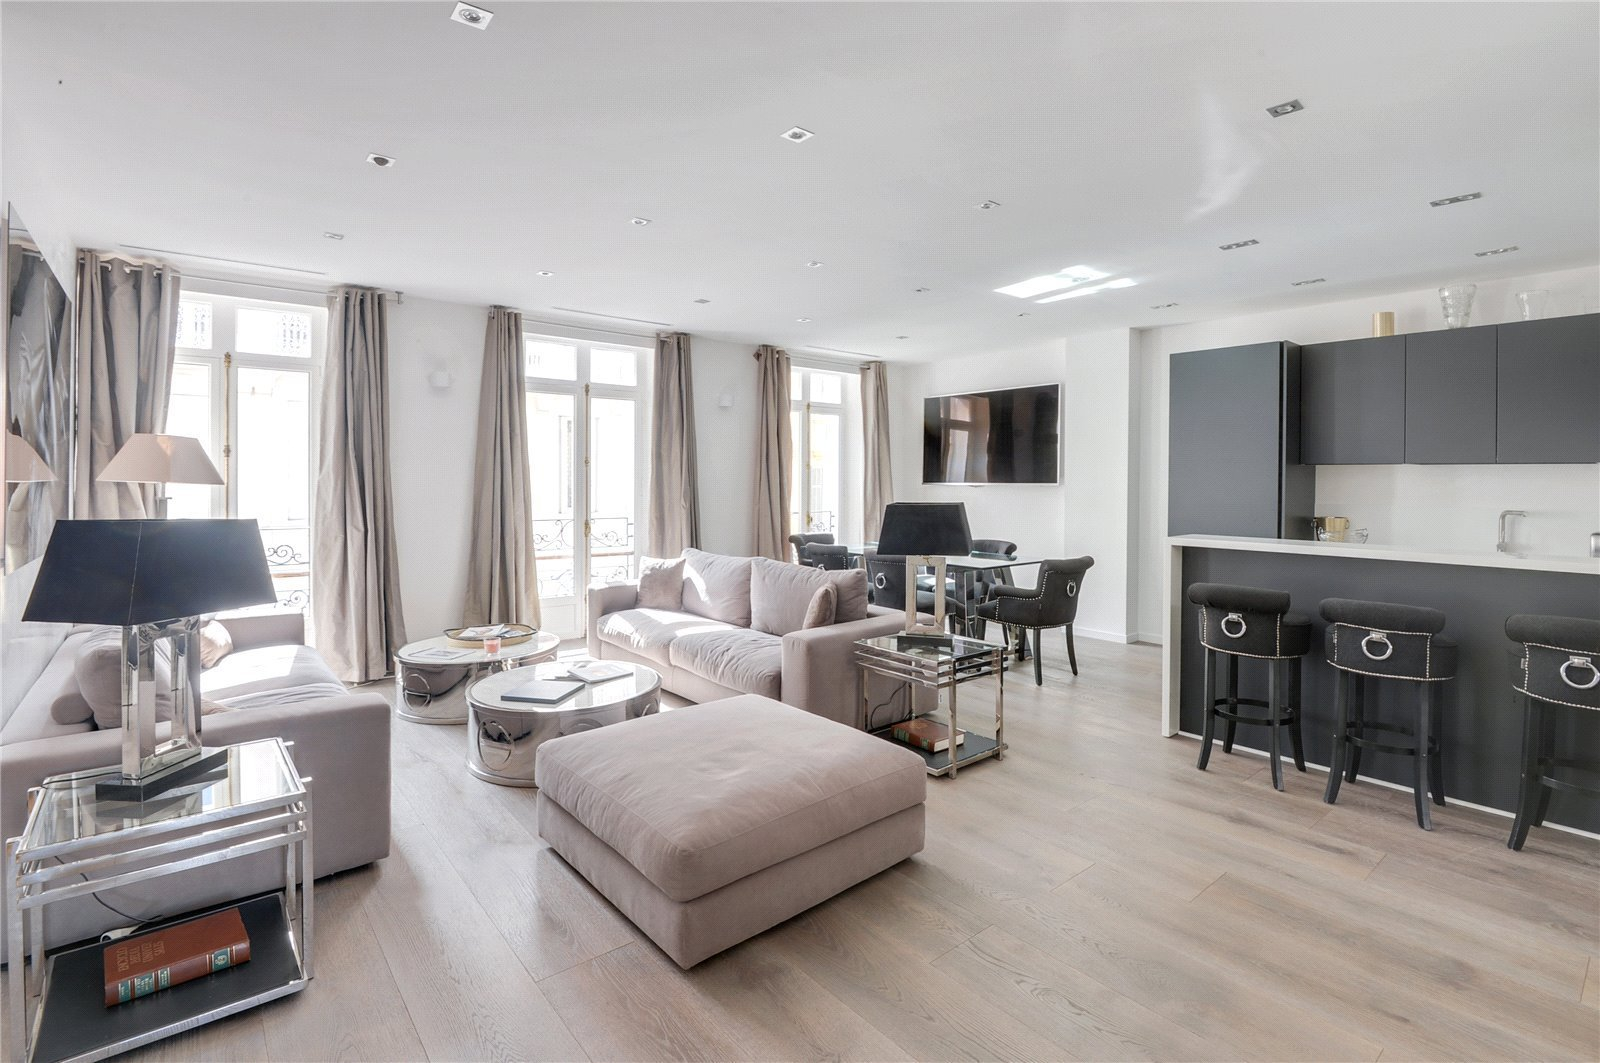 In the heart of Cannes center, boasting superb ceiling height, a fully refurbished four bedroom apar